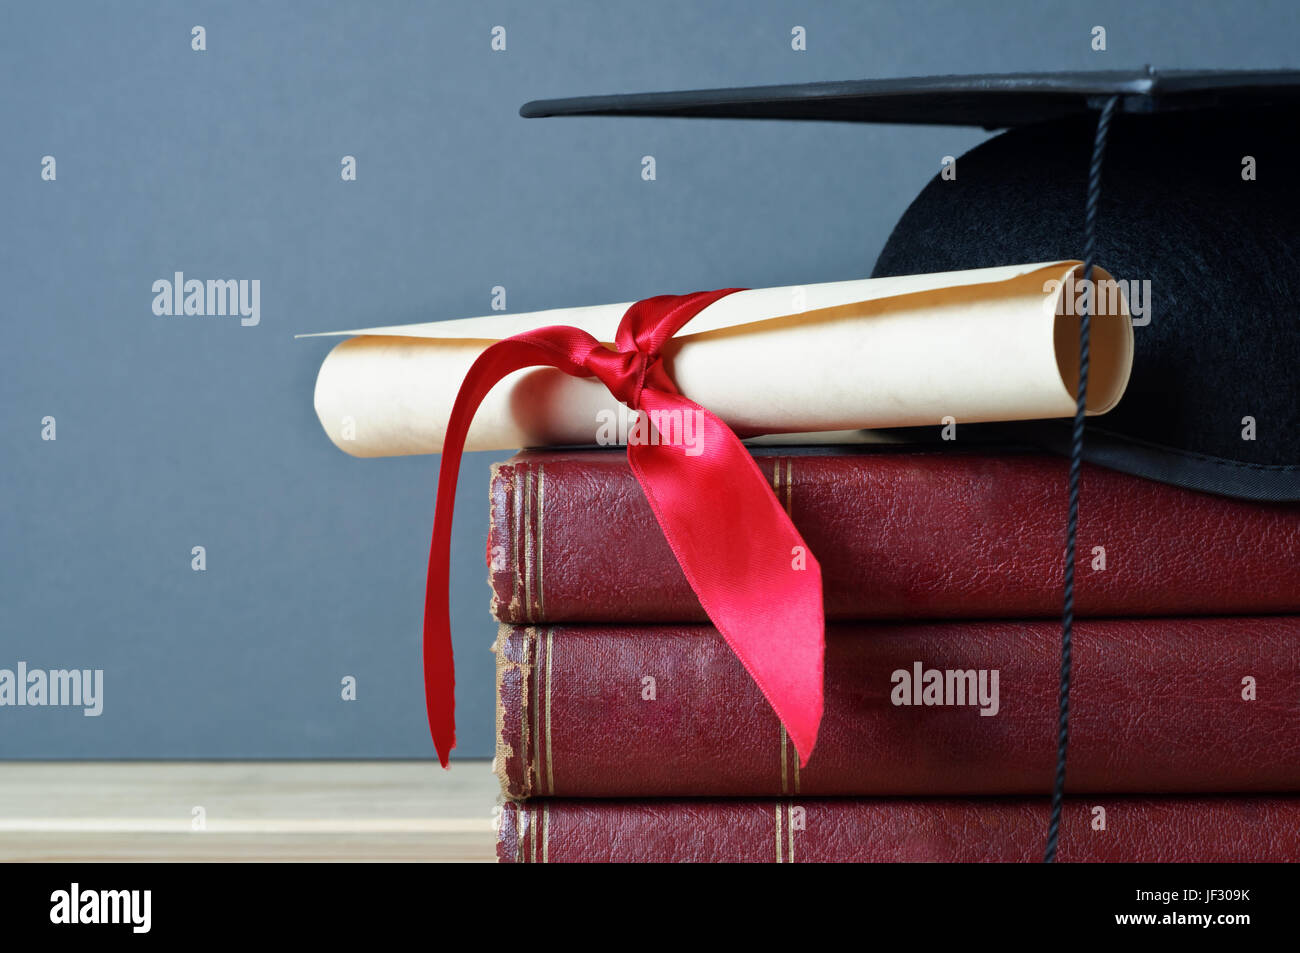 Close up of a mortarboard and graduation scroll on top of a pile of old, worn books, placed on a light wood table - Stock Image